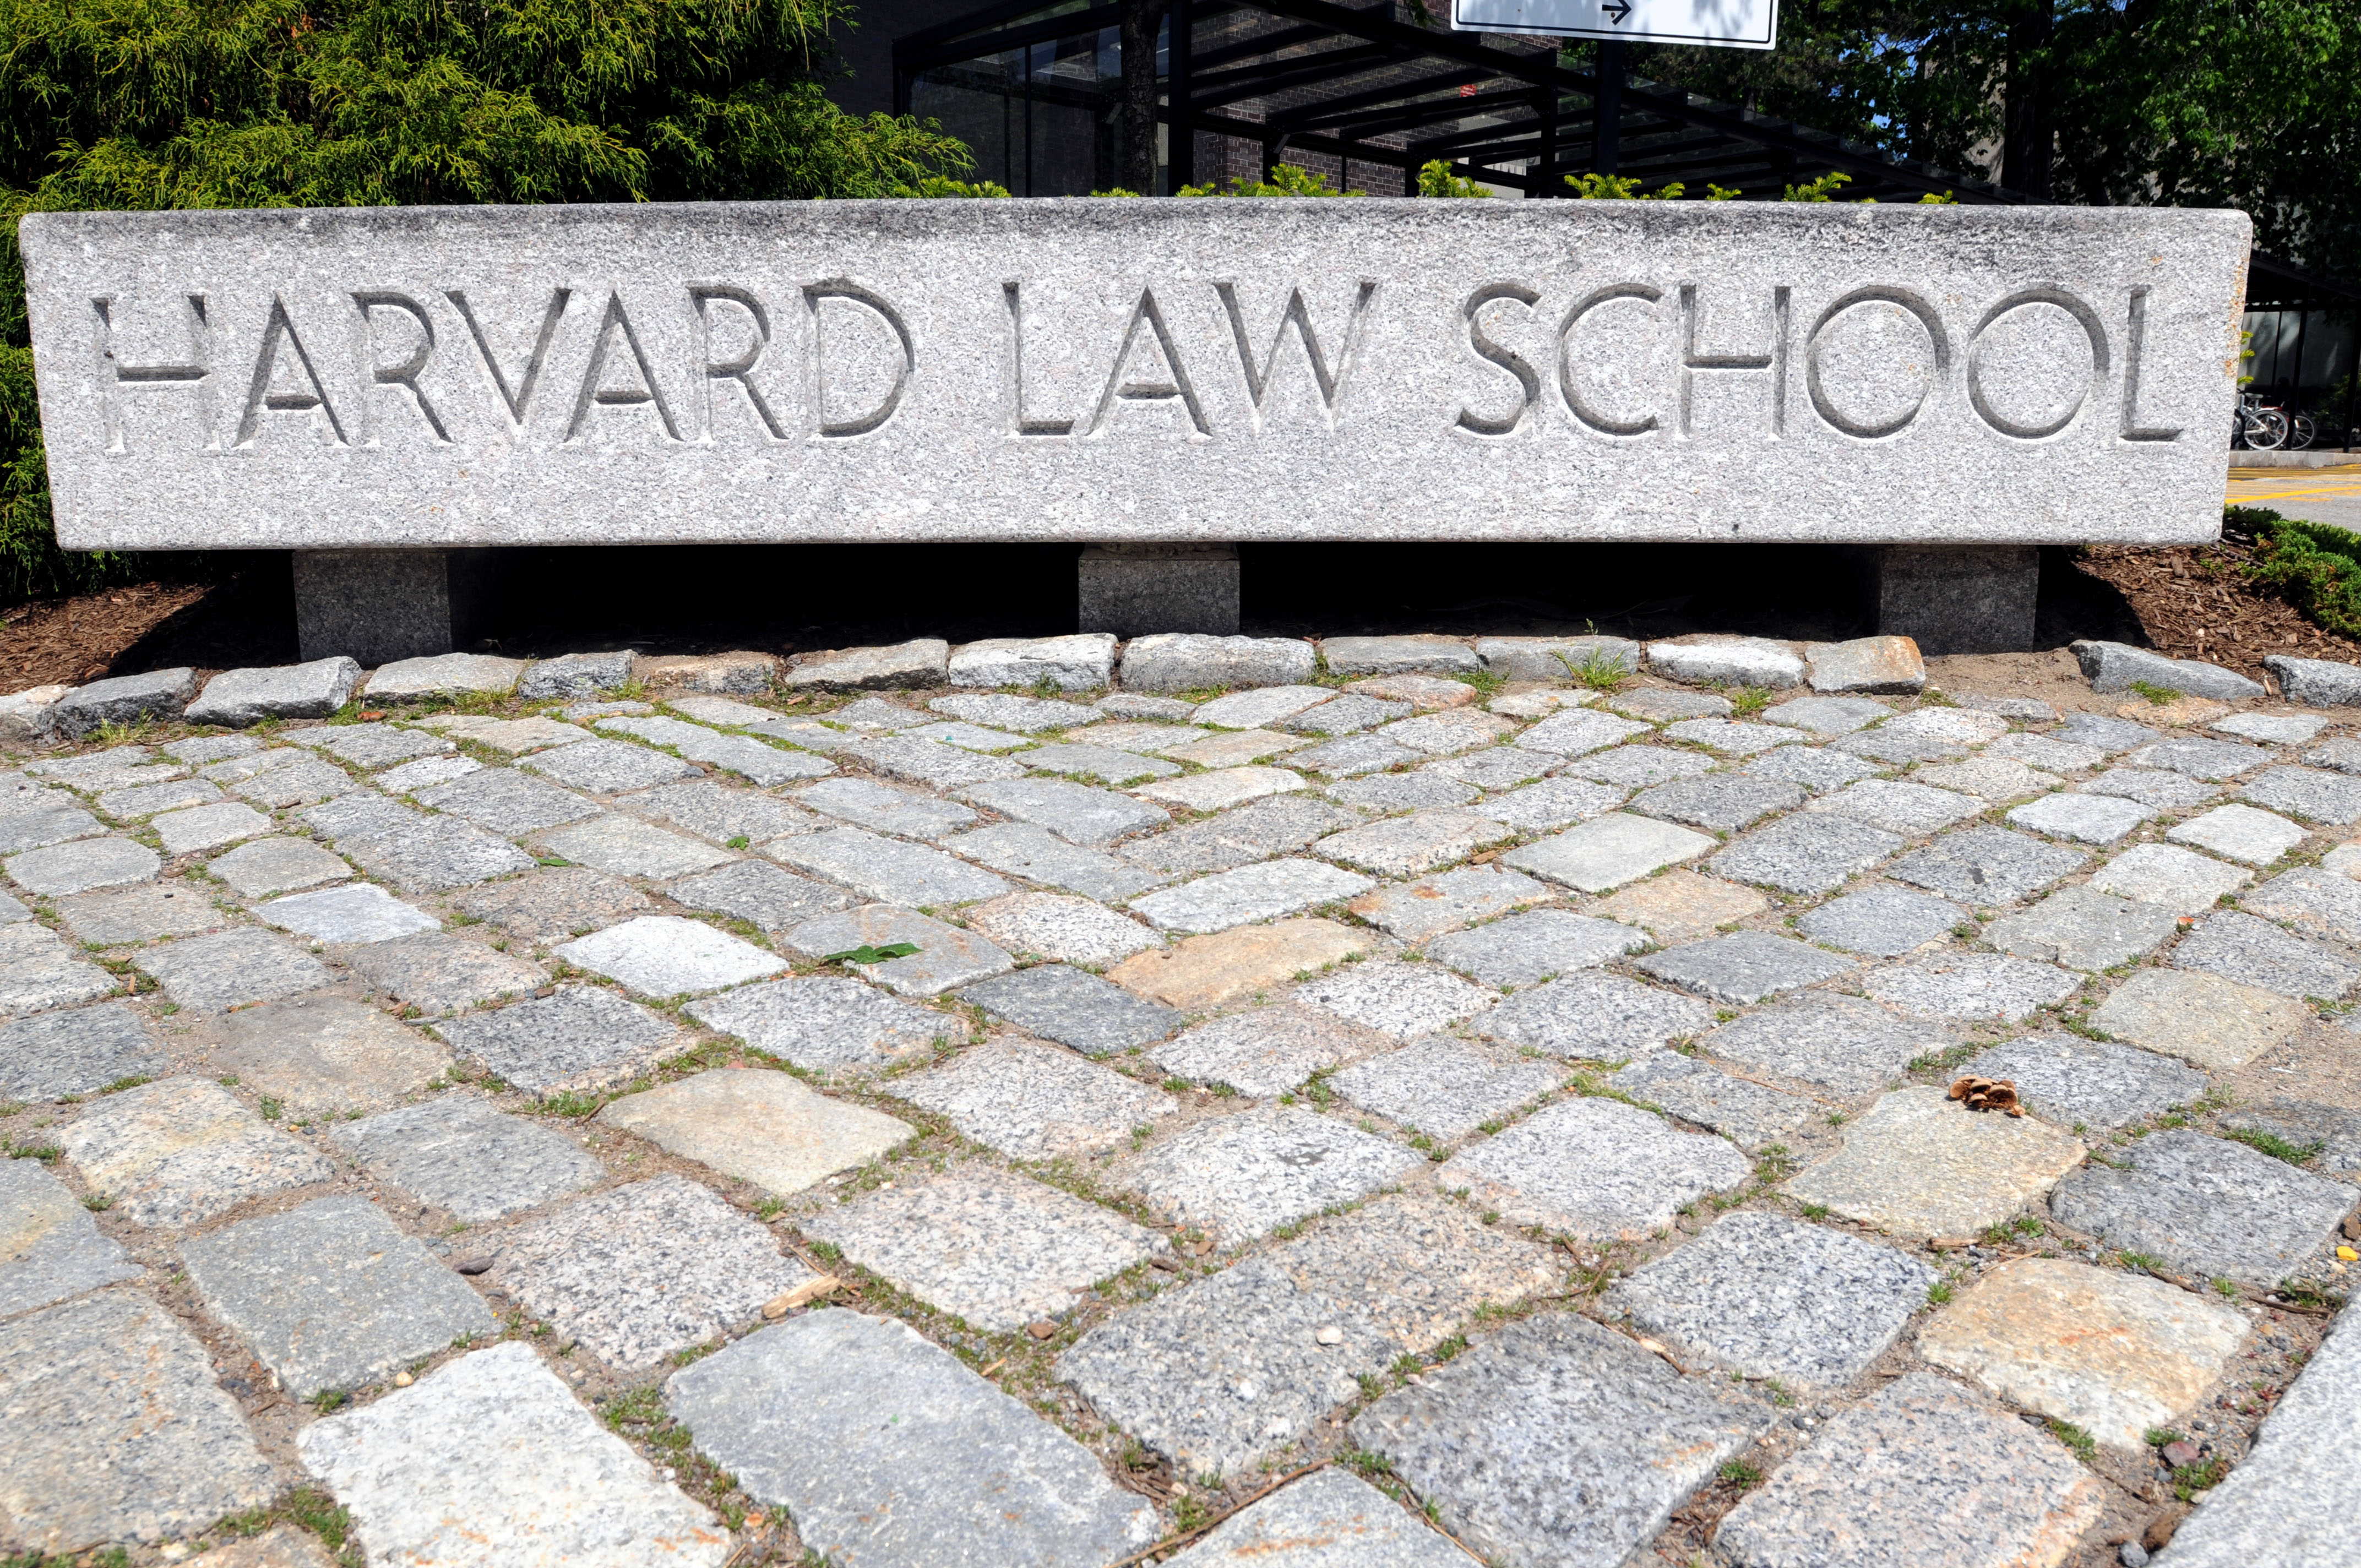 The entrance to Harvard Law School campus is seen in 2010